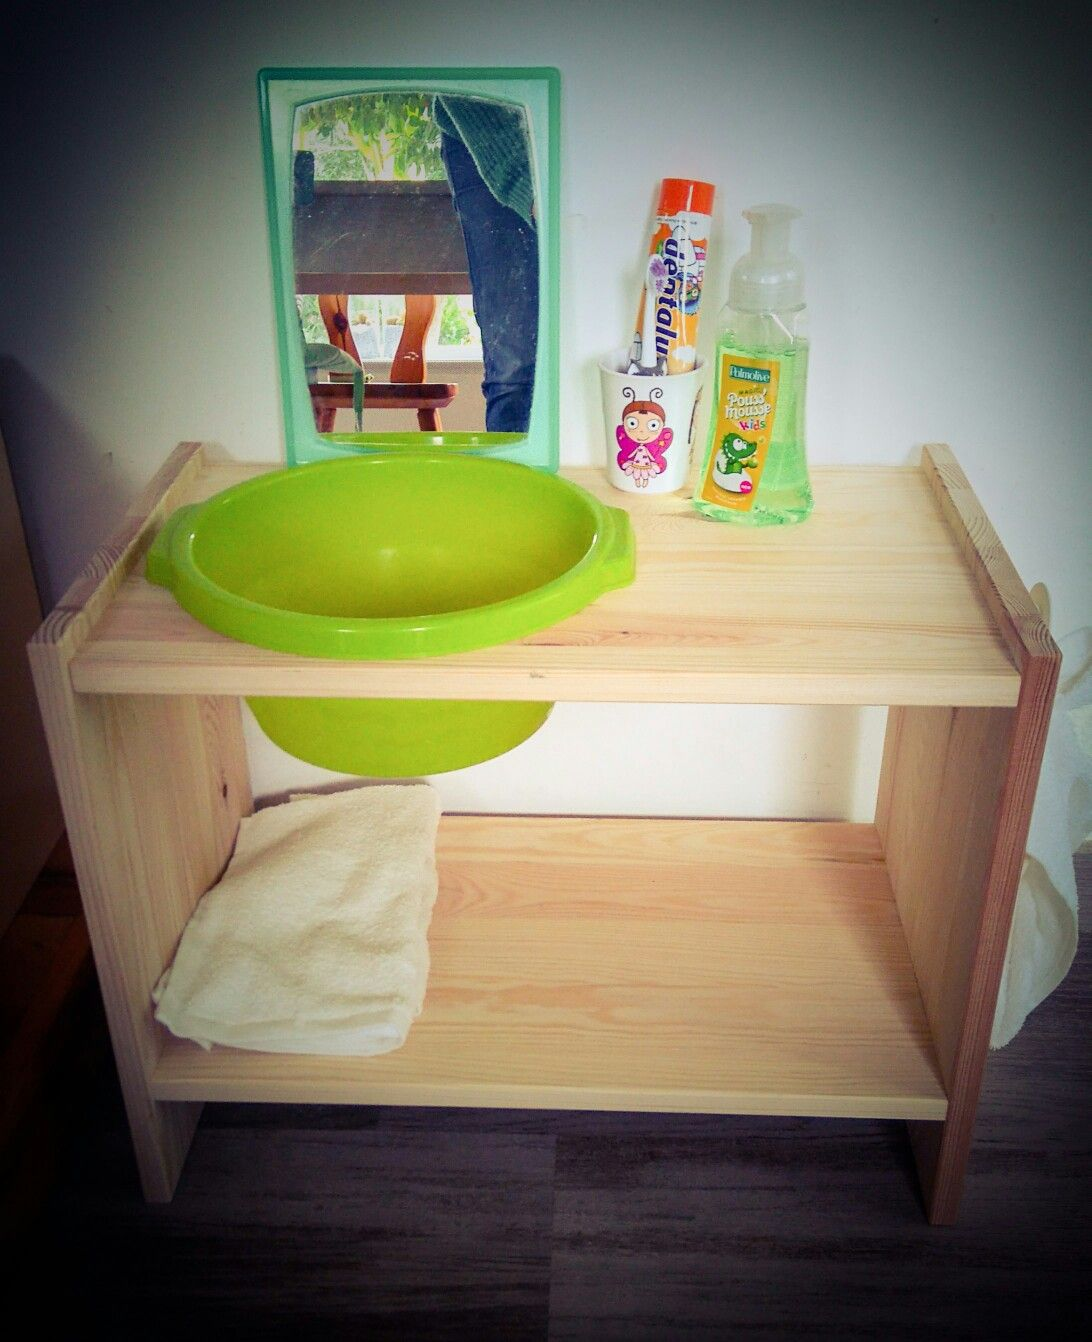 Diy lavabo b b montessori ikea hack care of self toilet independence ikea montessori - Ikea meuble toilette ...